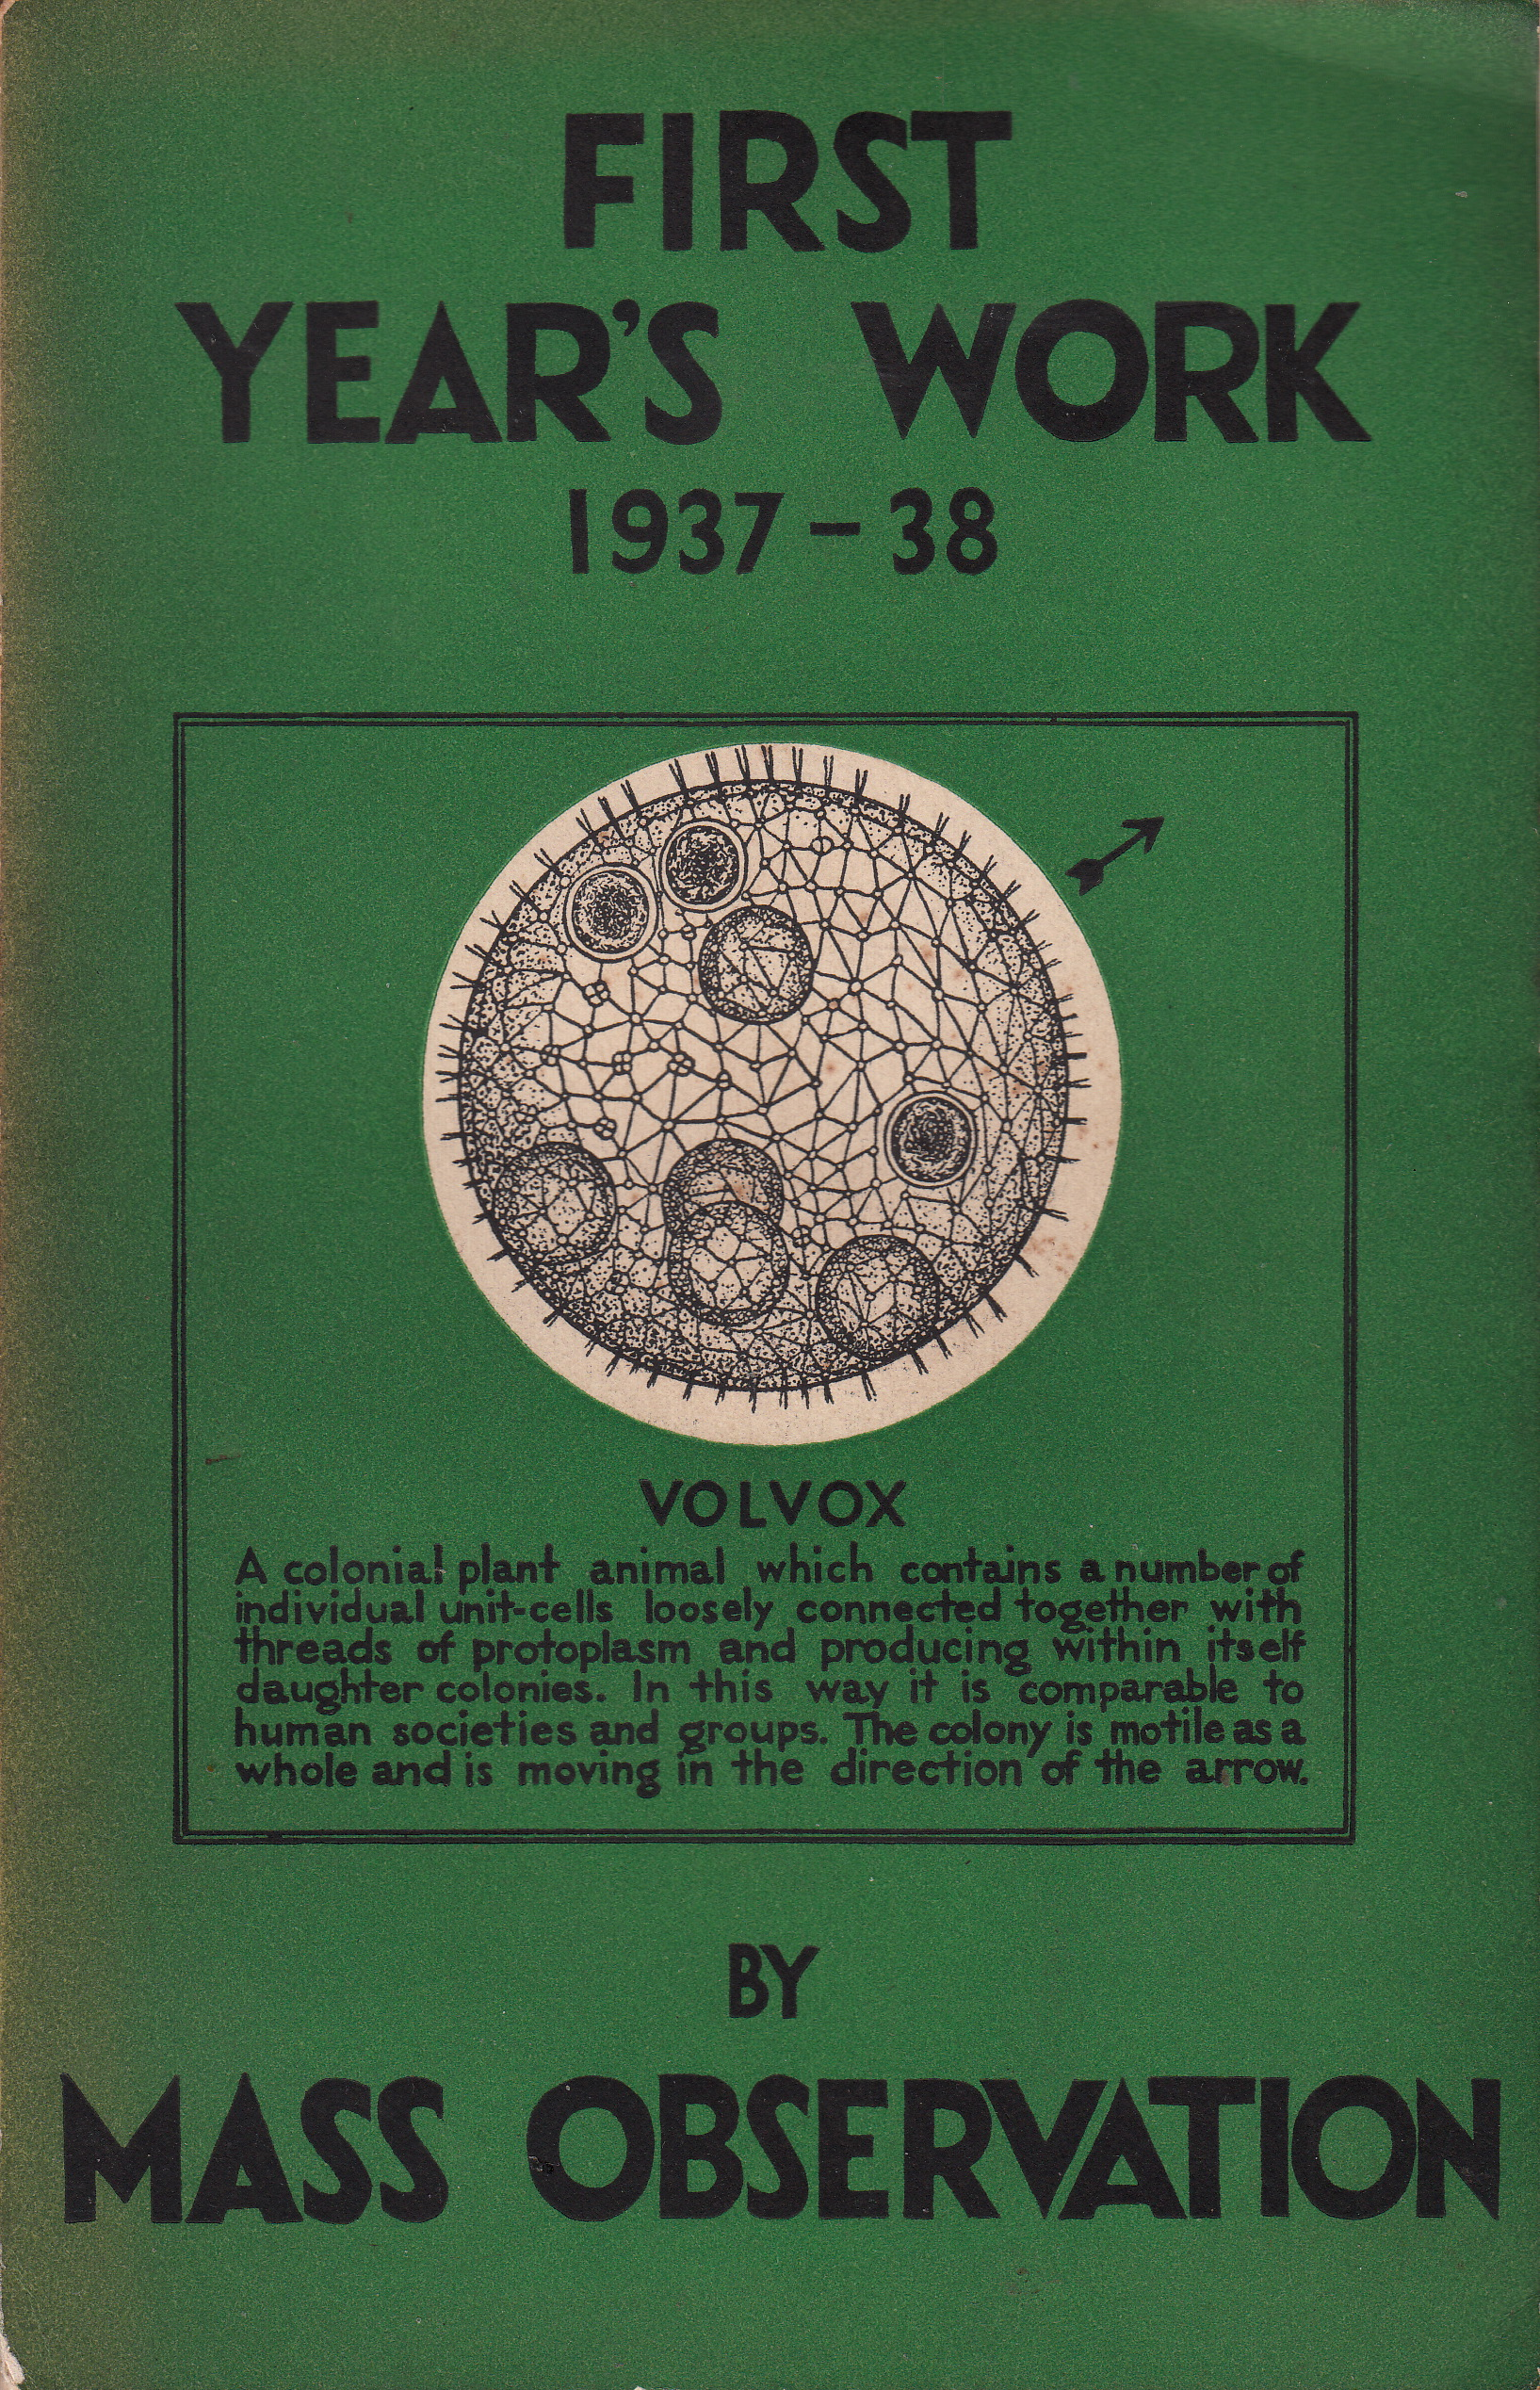 The cover of Mass-Observation's First Year's Work: 1937–1938.